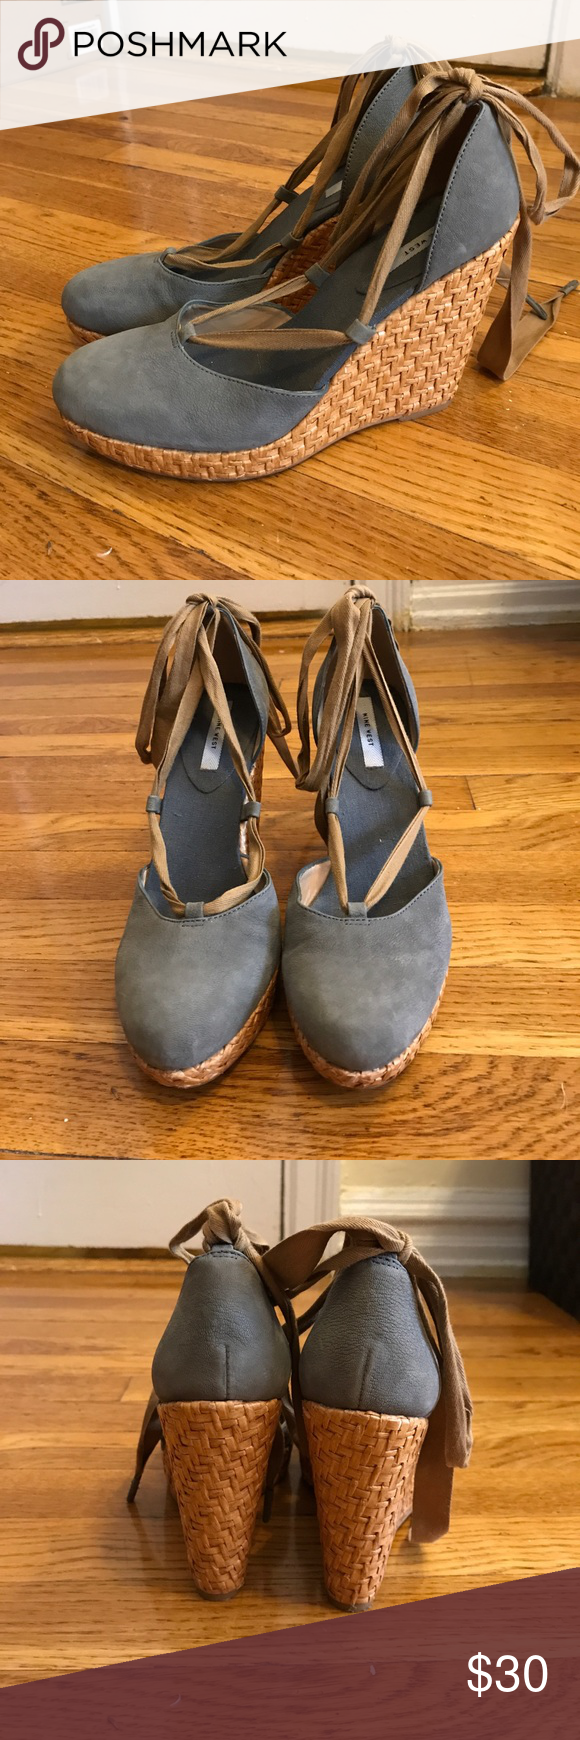 Uncategorized Leather Like Material nine west lace up wedges size 8 5 adorable blue leather like material and brown laces